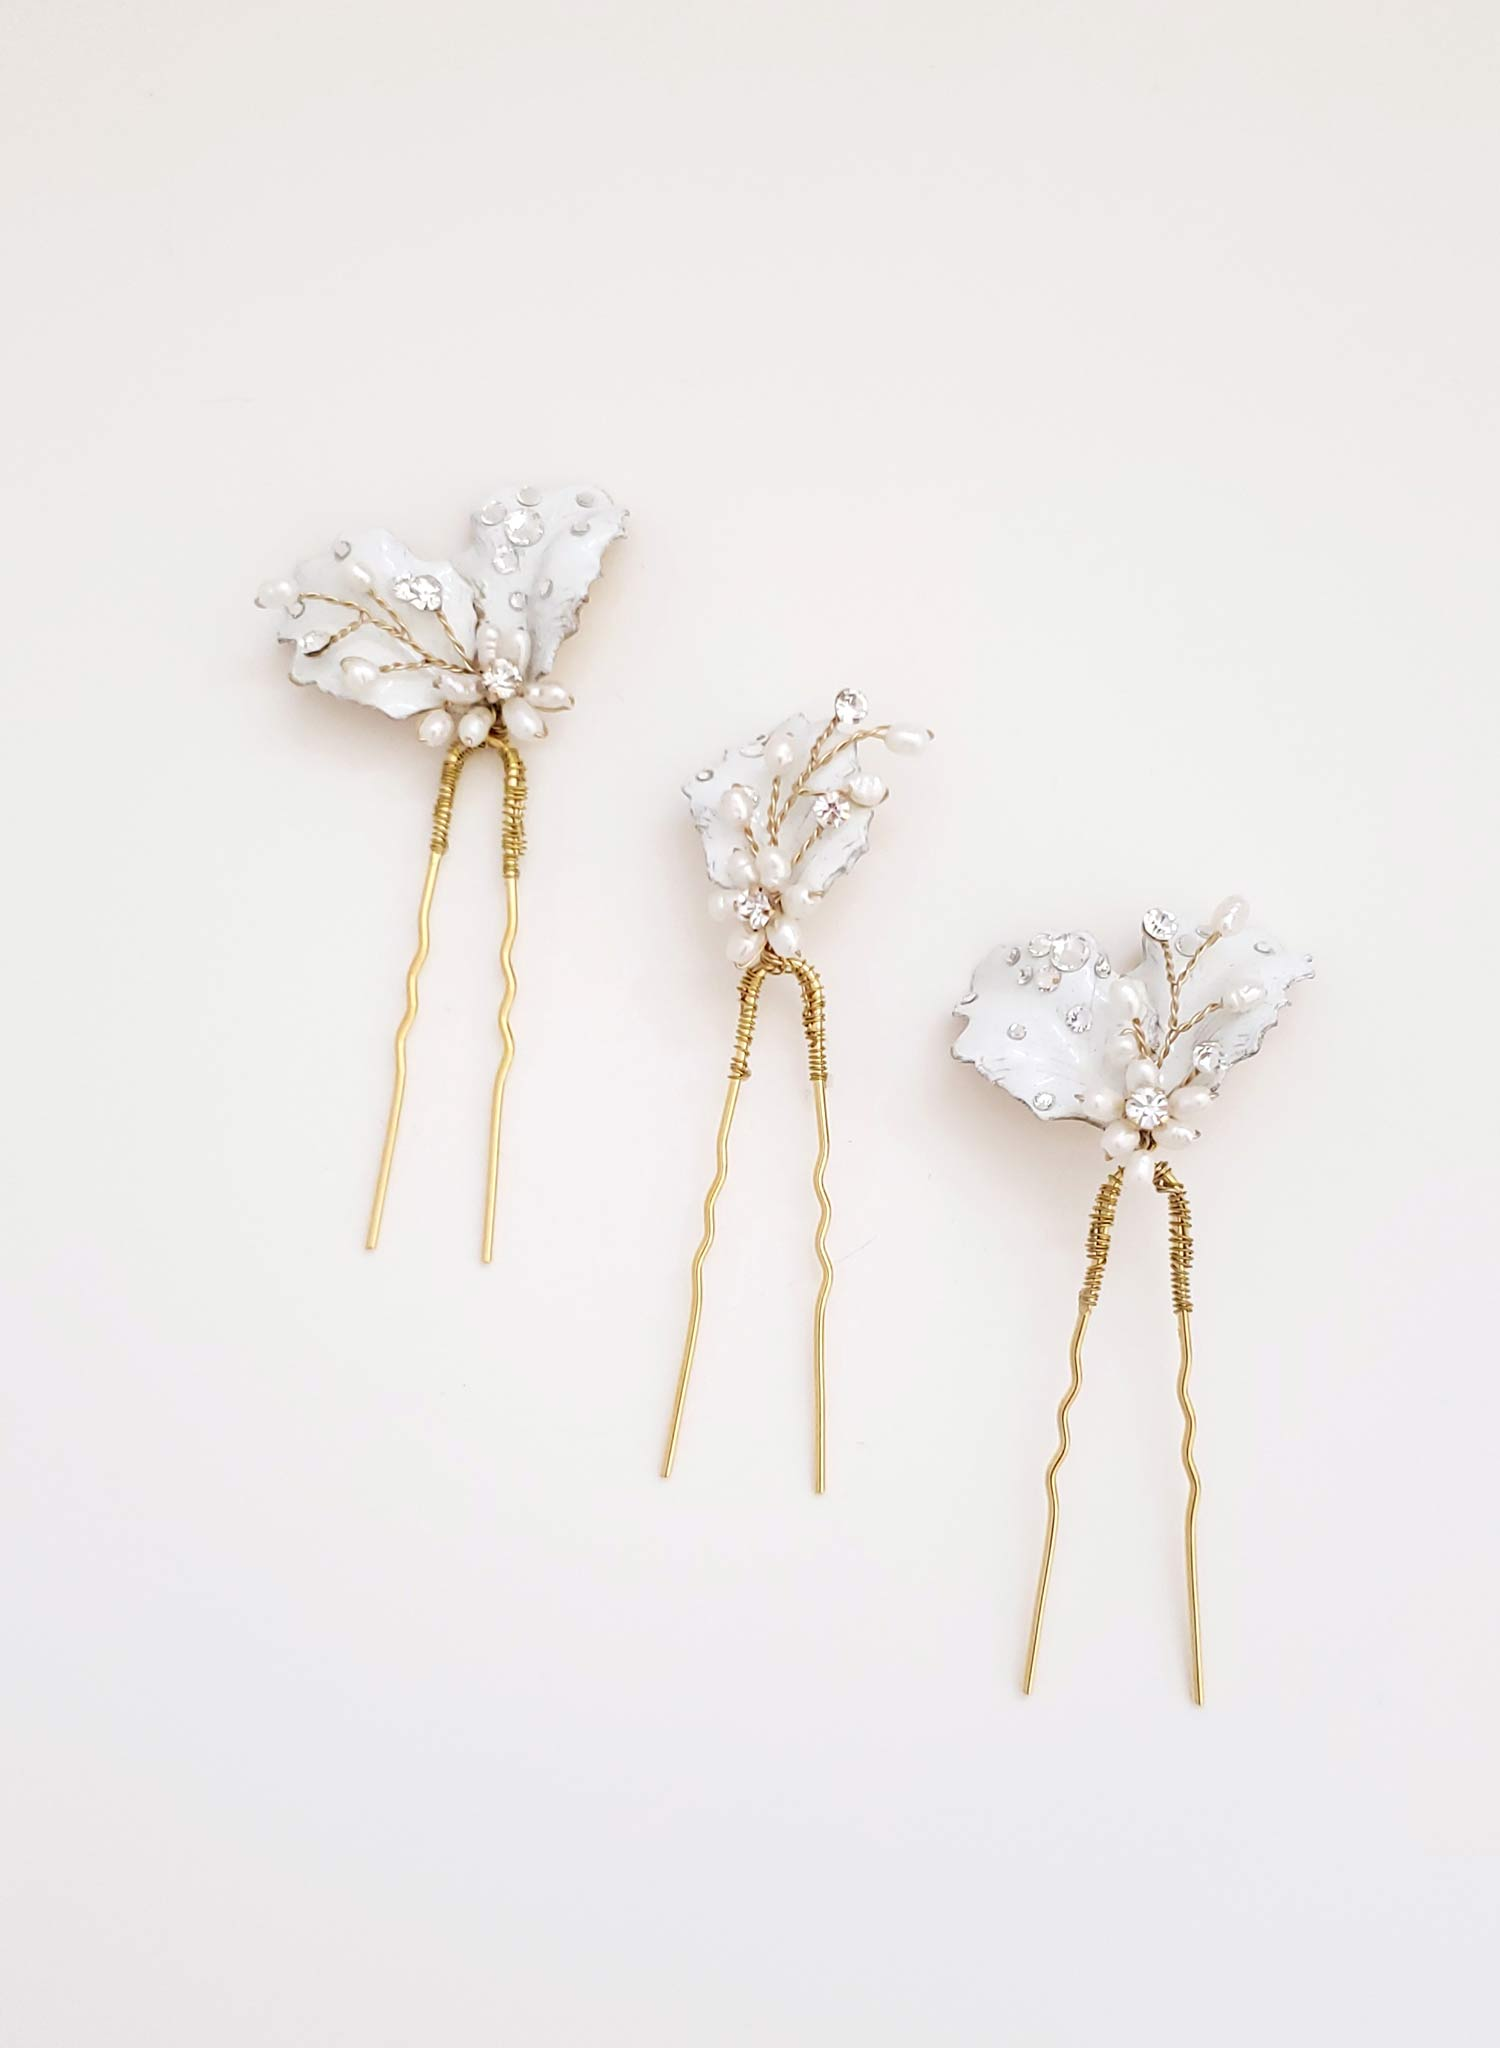 Dewdrop petal hair pin set of 3 - Style #938